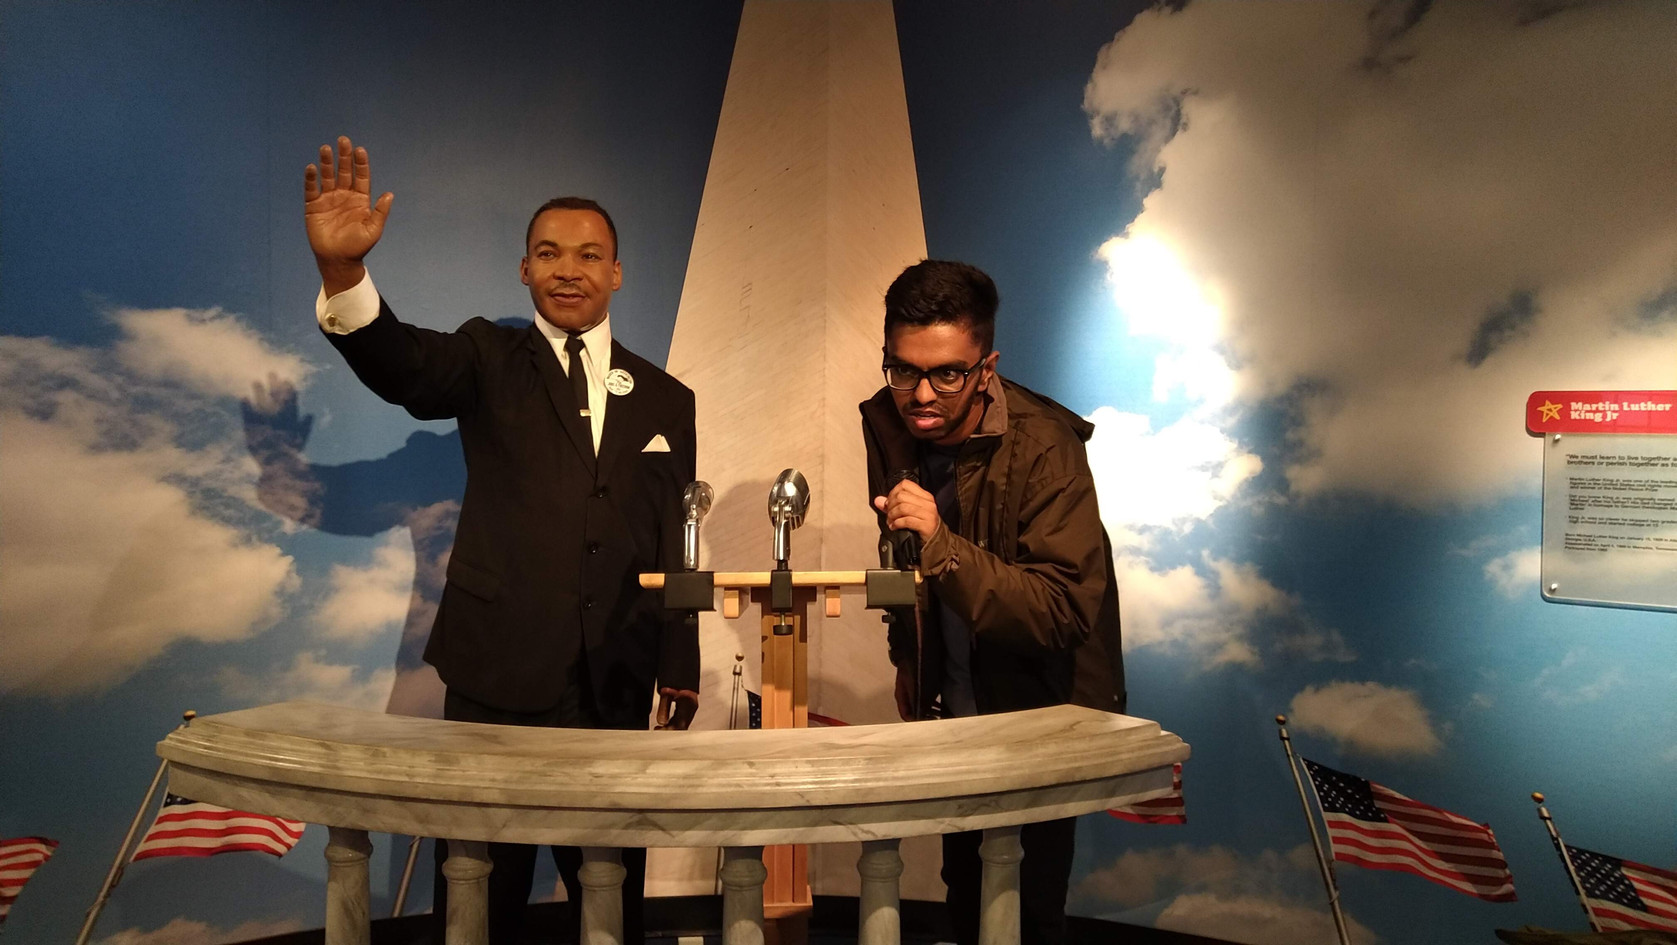 One with Martin Luther King Jr. at Madame Tussaud's Wax Museum